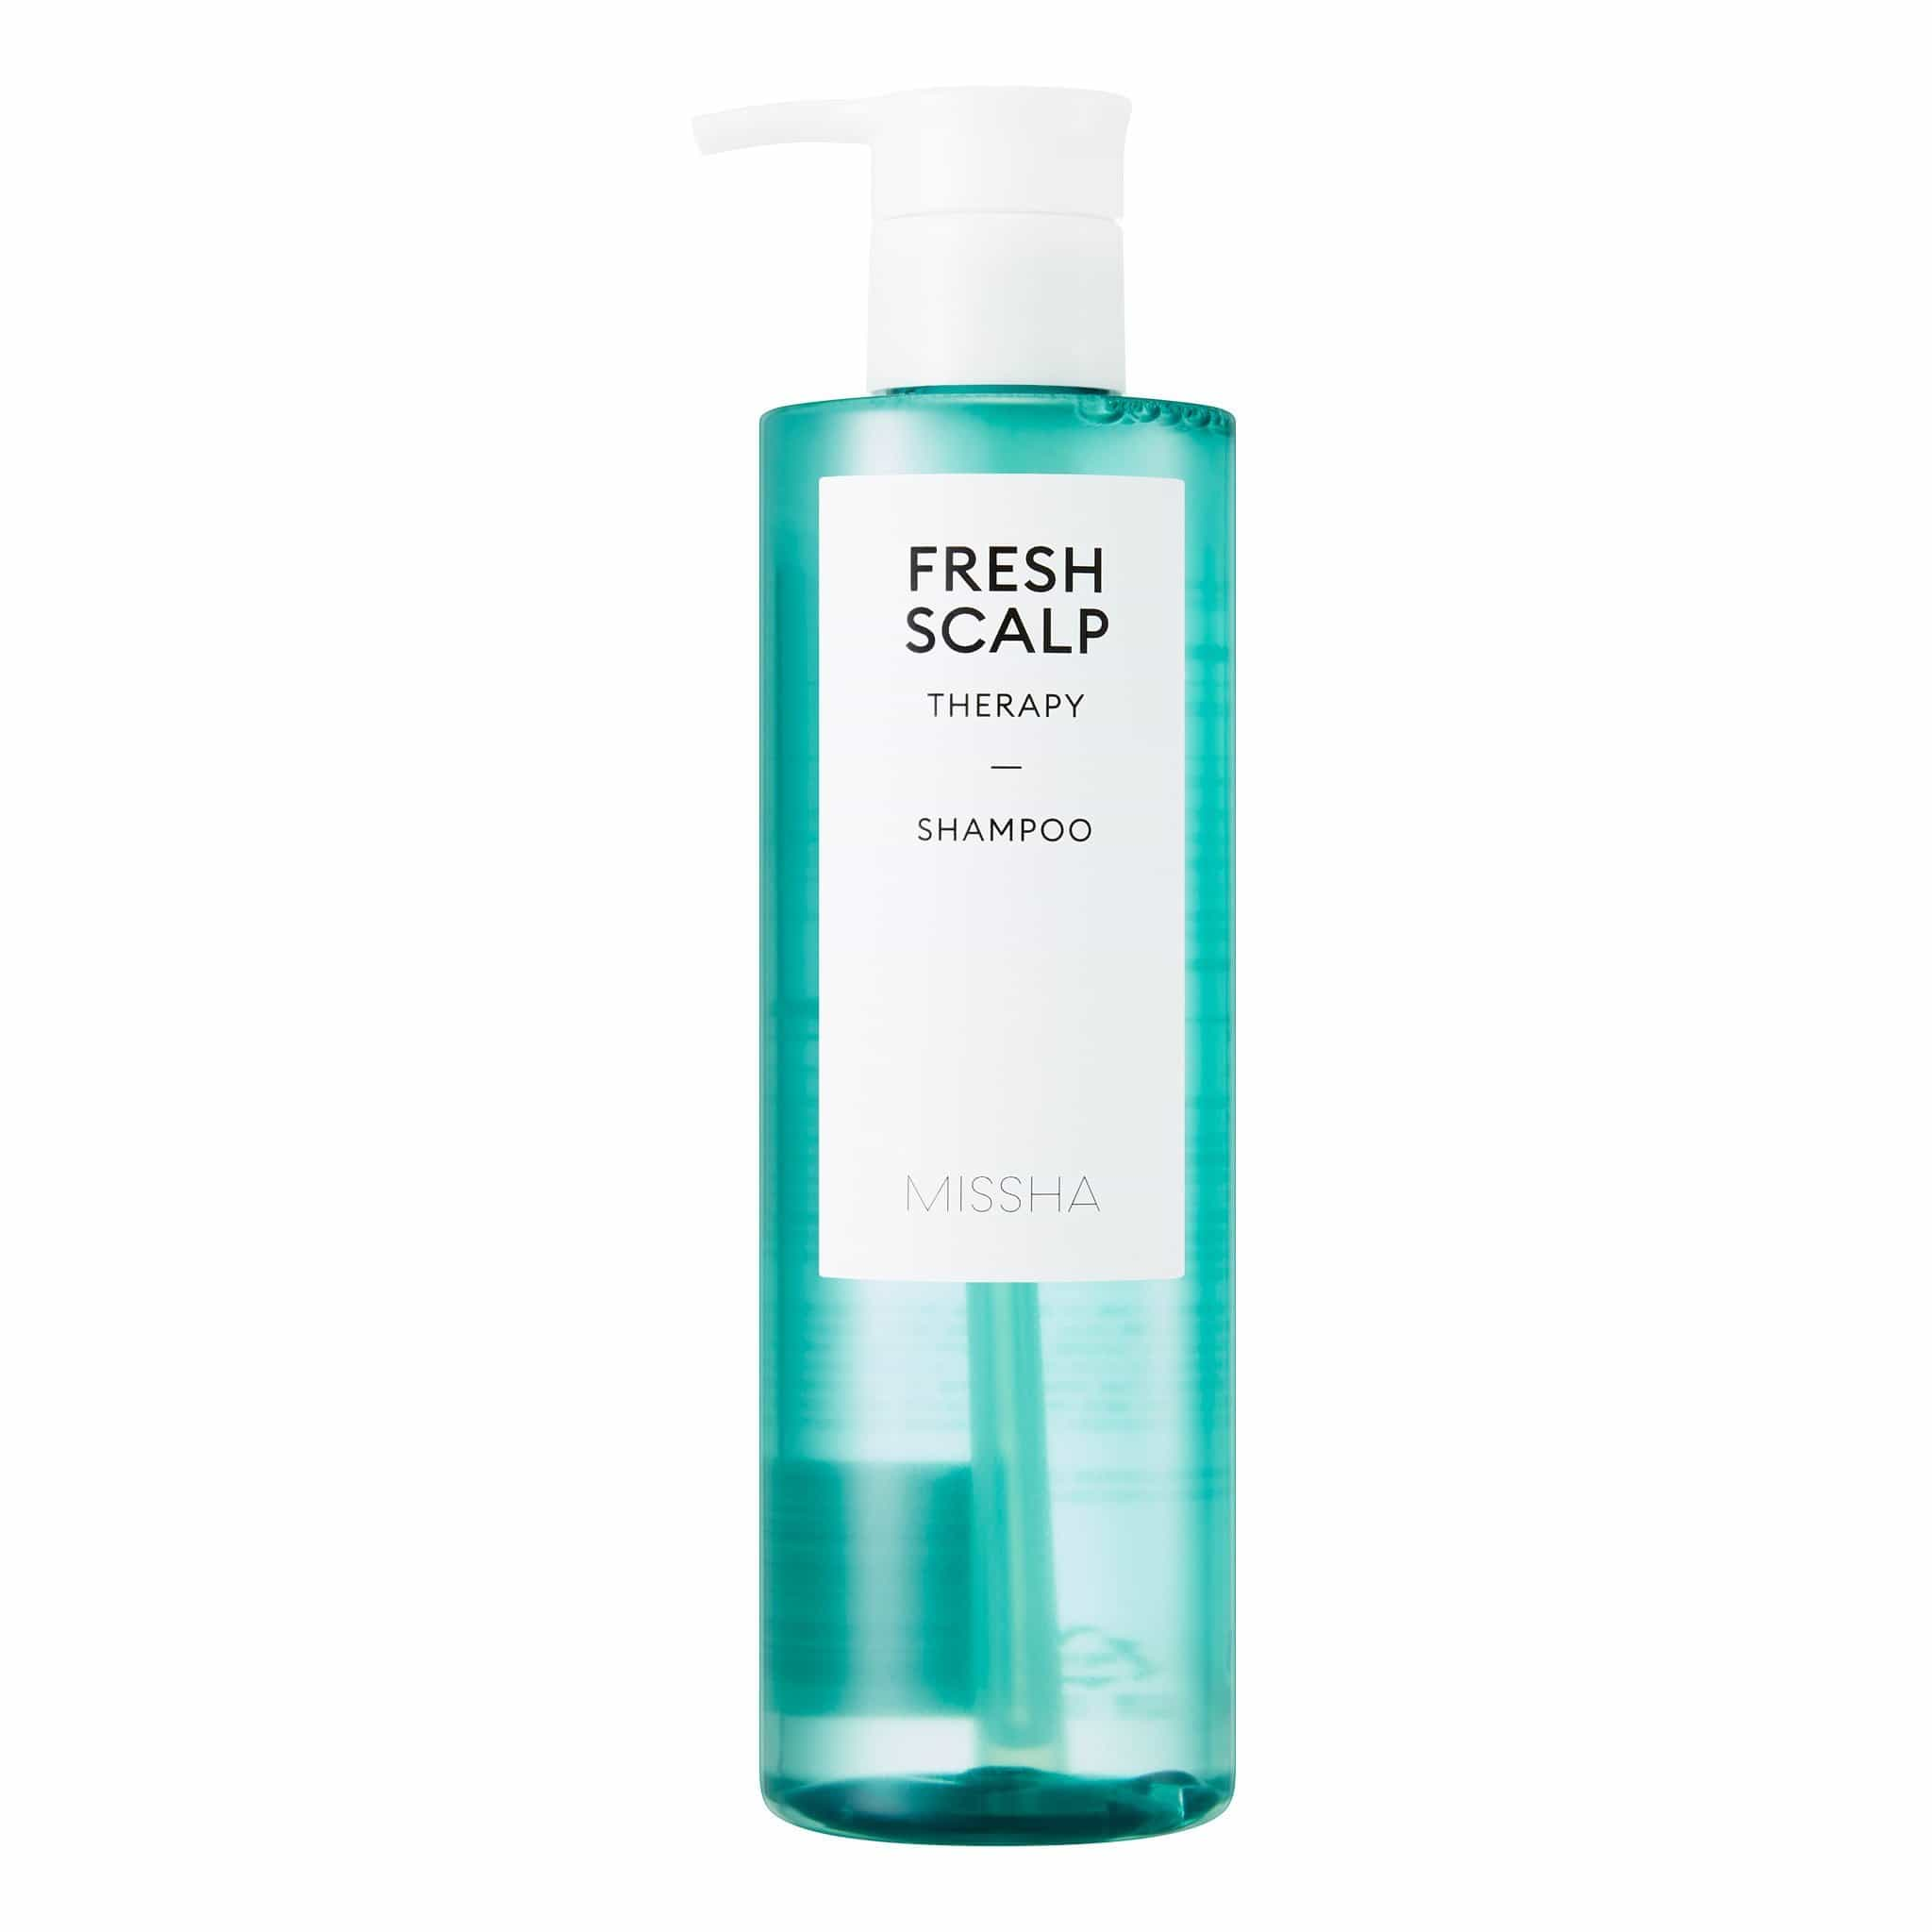 FRESH SCALP THERAPY SHAMPOO - MISSHA